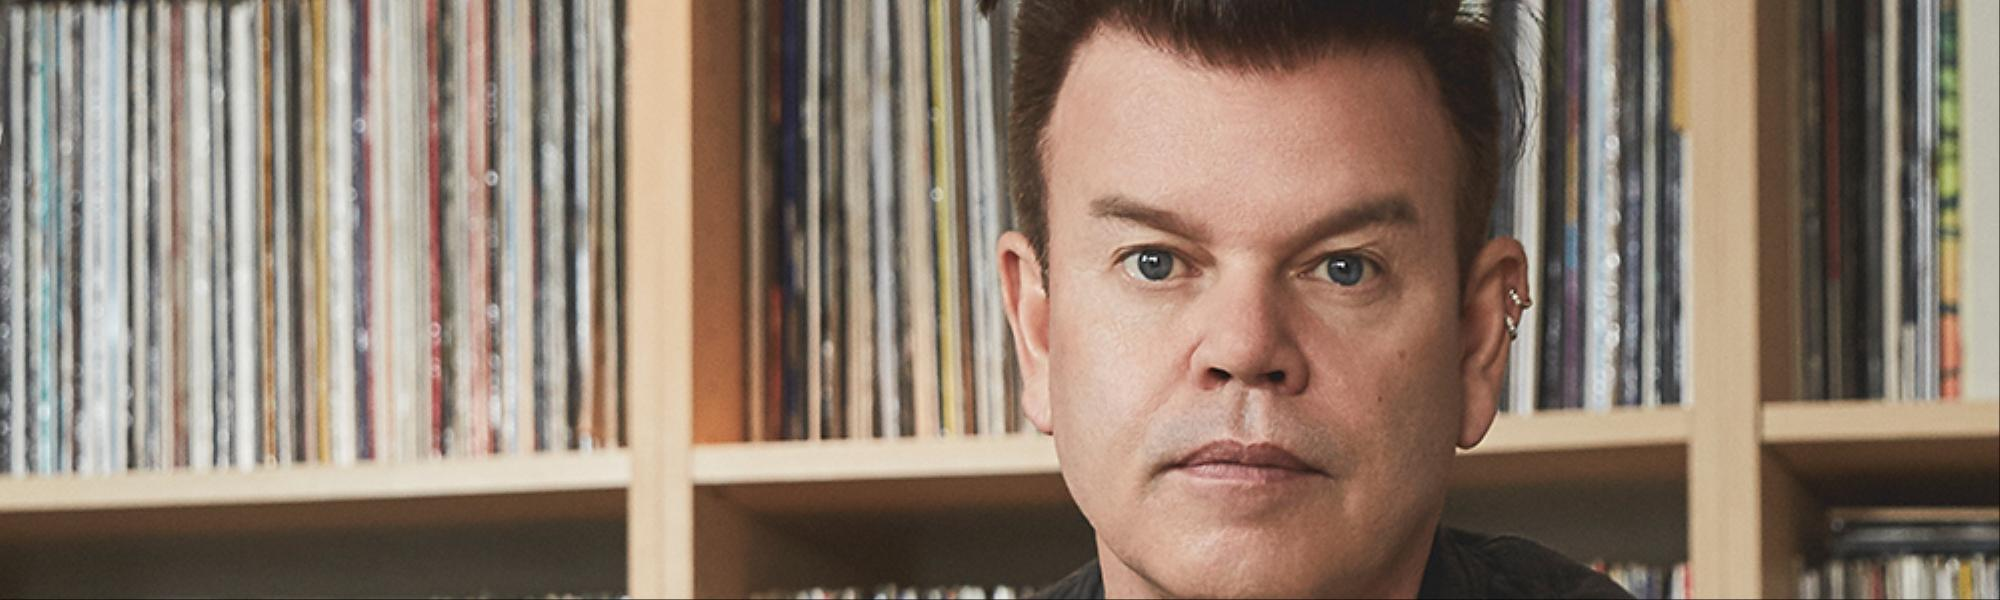 Paul Oakenfold Learned About Ibiza Because of a World Famous Drag Queen